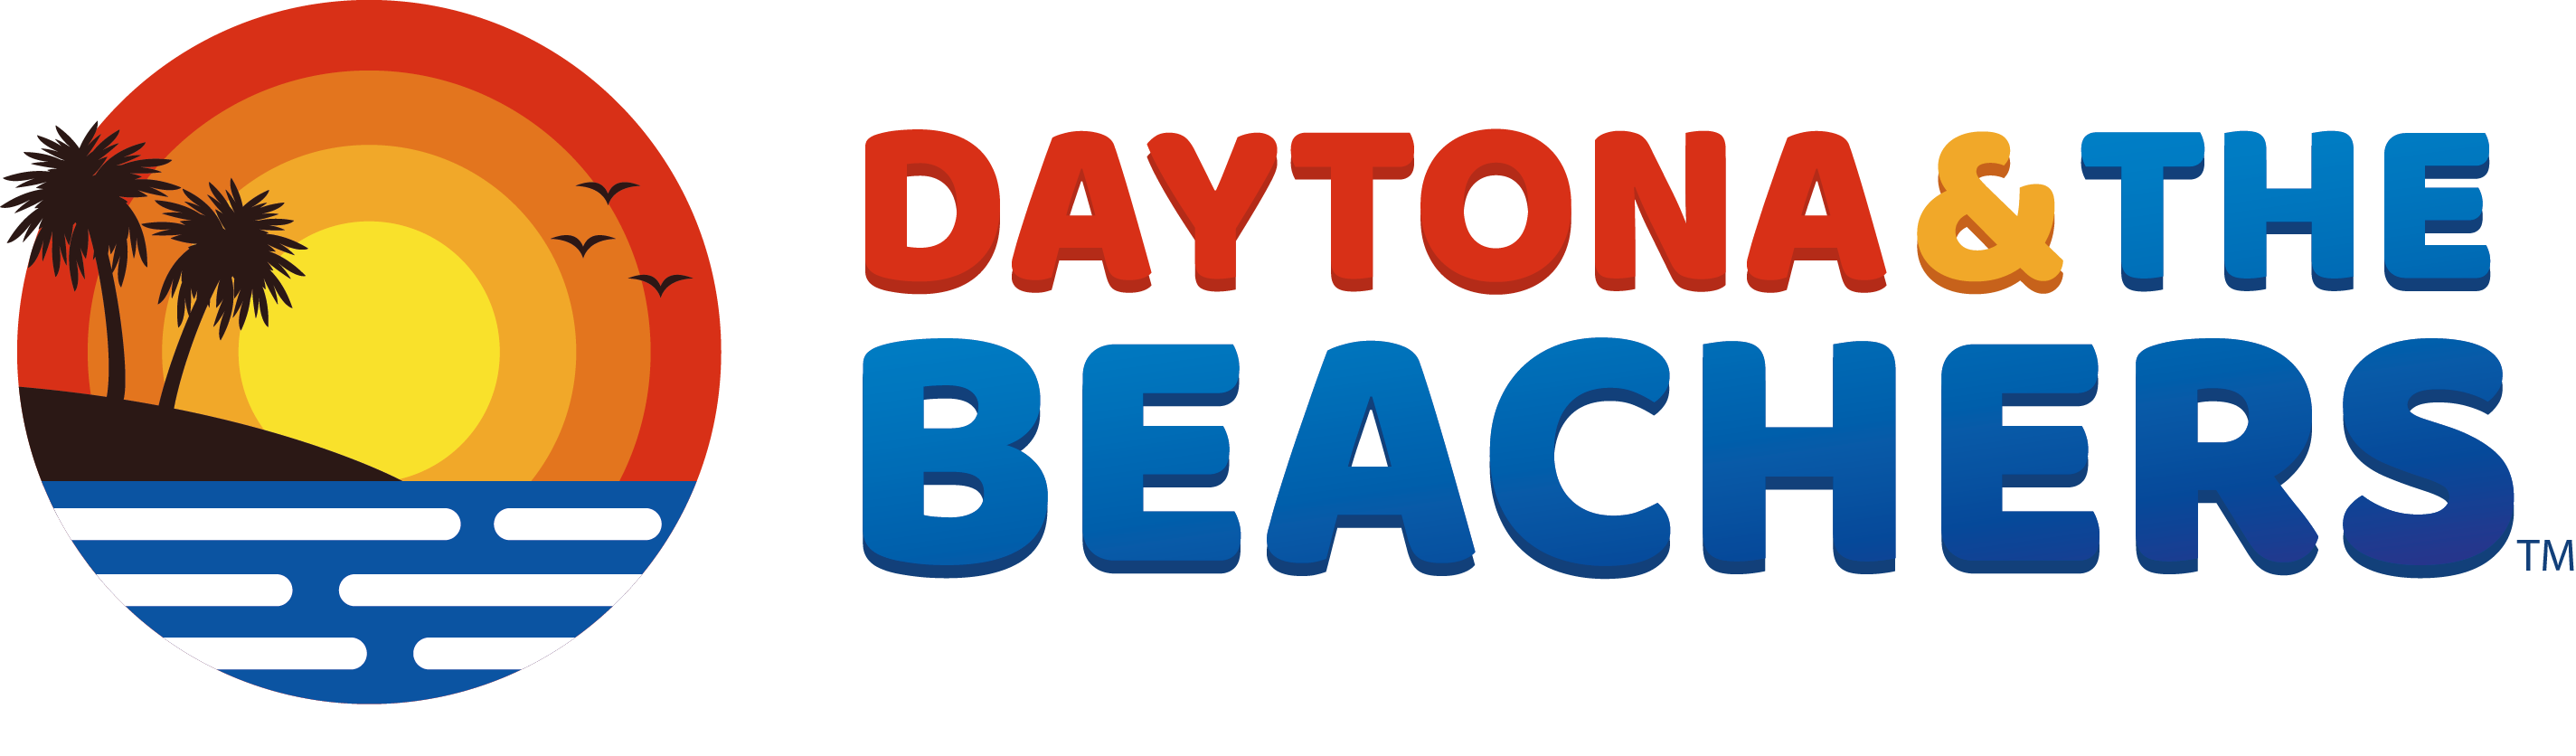 daytona and the beachers logo